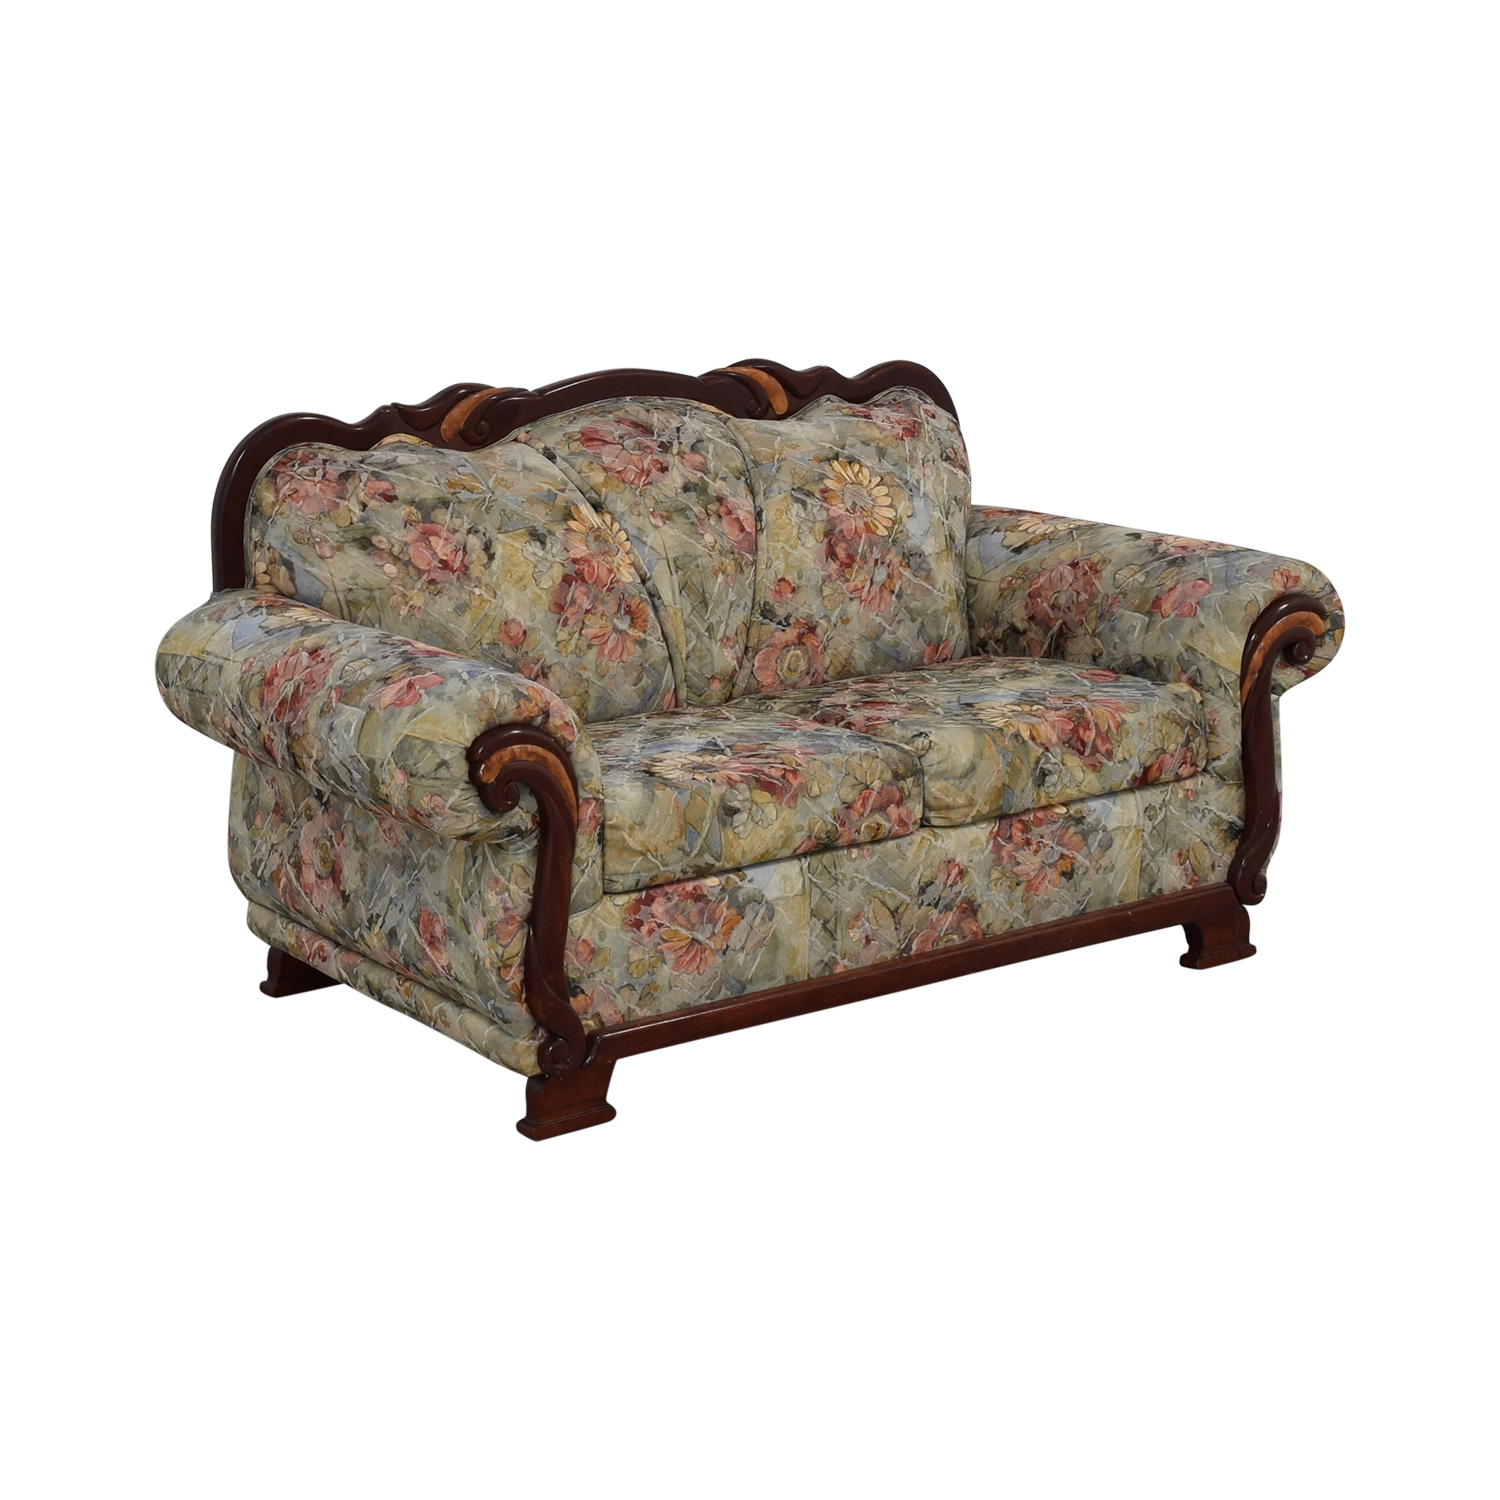 Floral Upholstered Loveseat / Loveseats